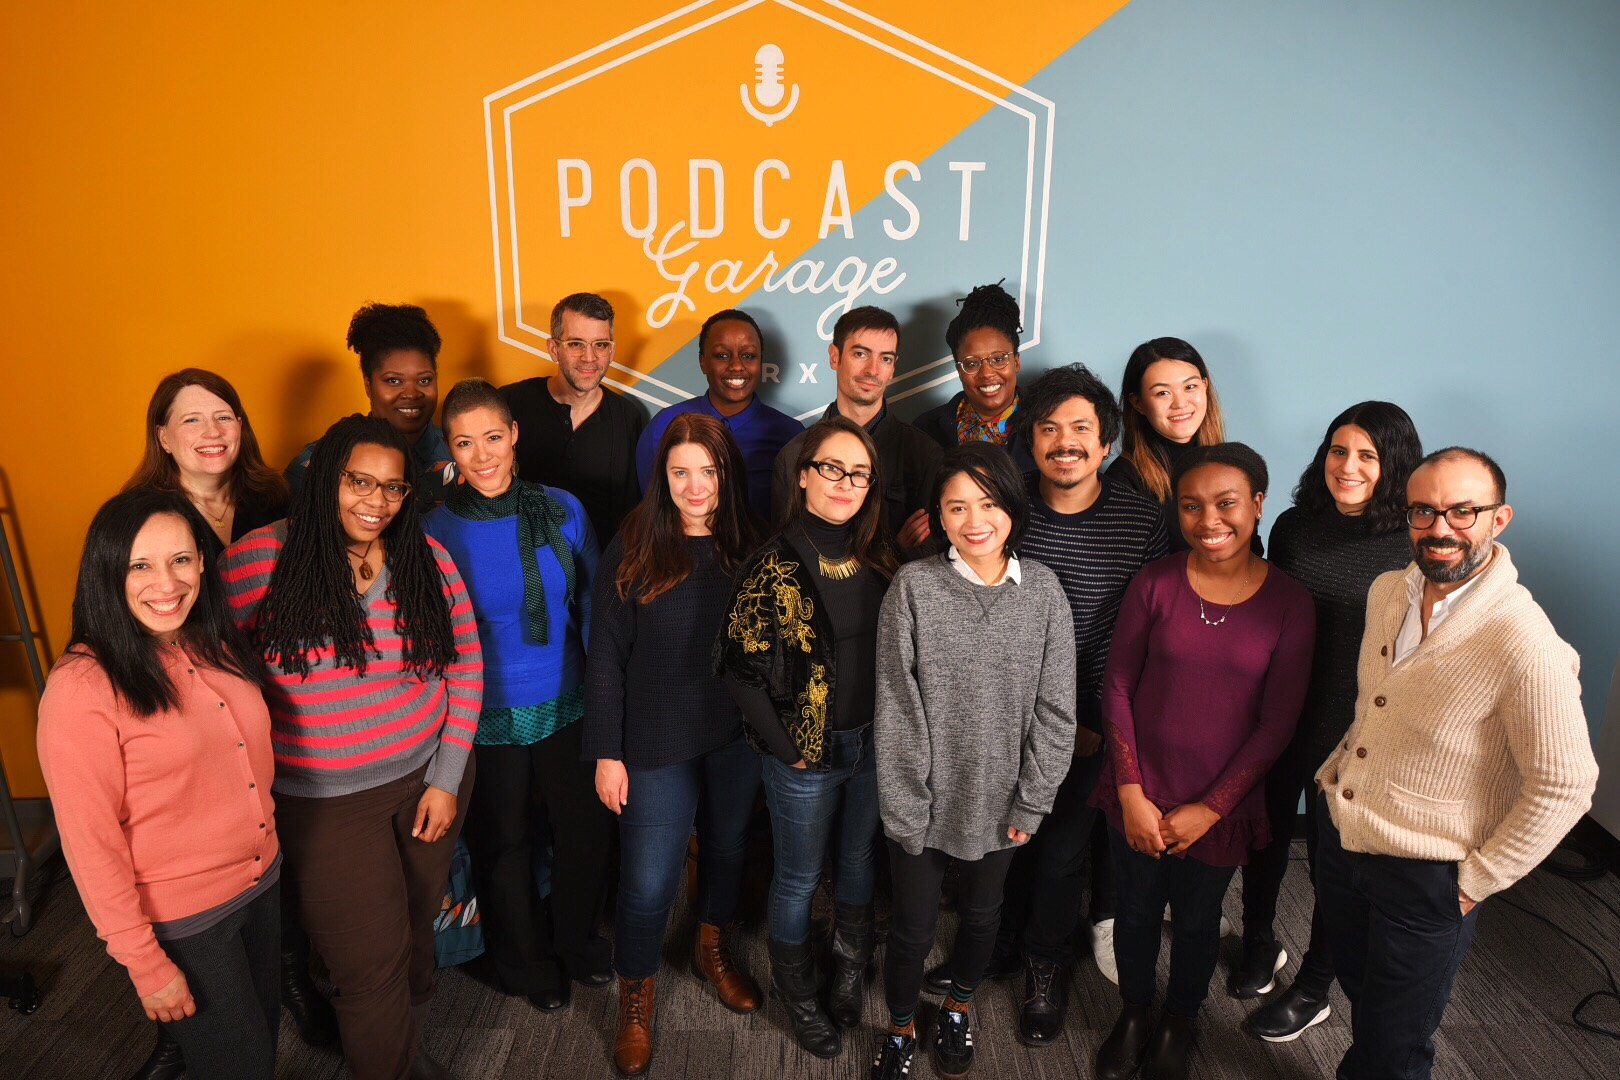 The Keyword - BRINGING NEW VOICES, AND COMMUNITIES, TO THE WORLD OF PODCASTSMAR 18, 2019